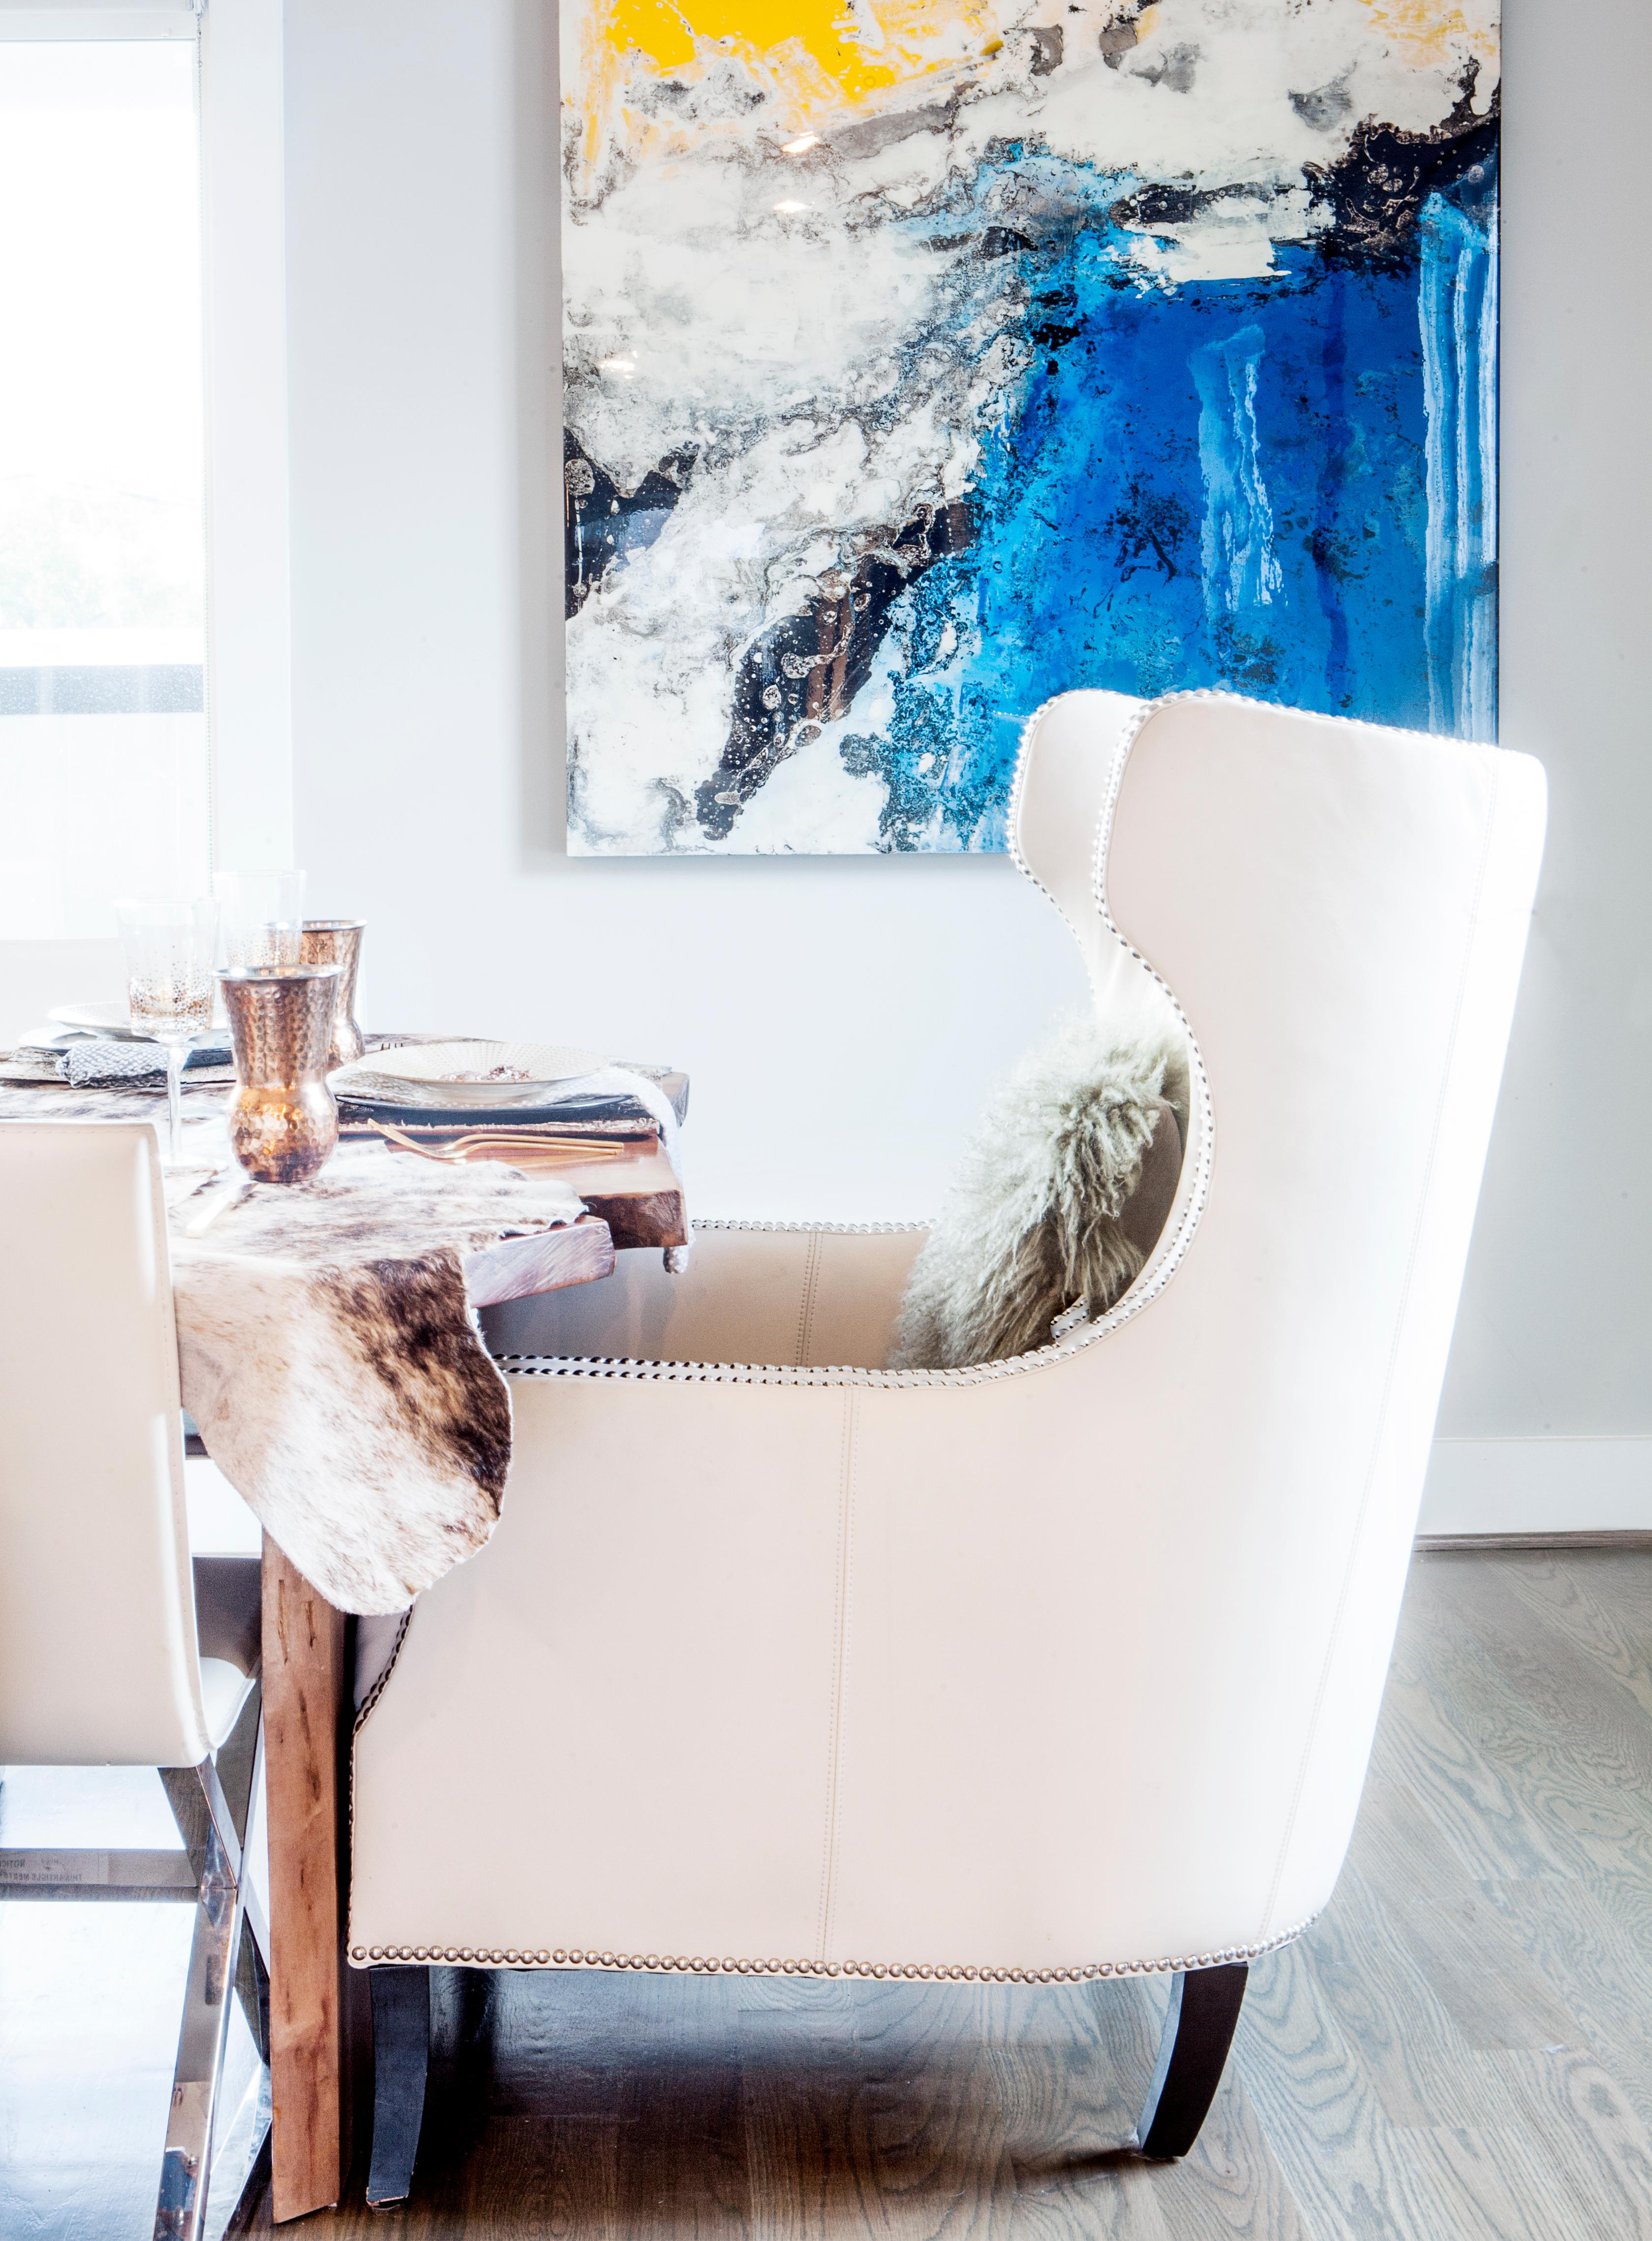 Statement seating really adds an extra element to a table. Get creative with your seating and find interesting chairs from around your home to place at the ends of the table. Here, I used wingback leather chairs from my living room for the guests of honor. (Image: Ashley Hafstead)